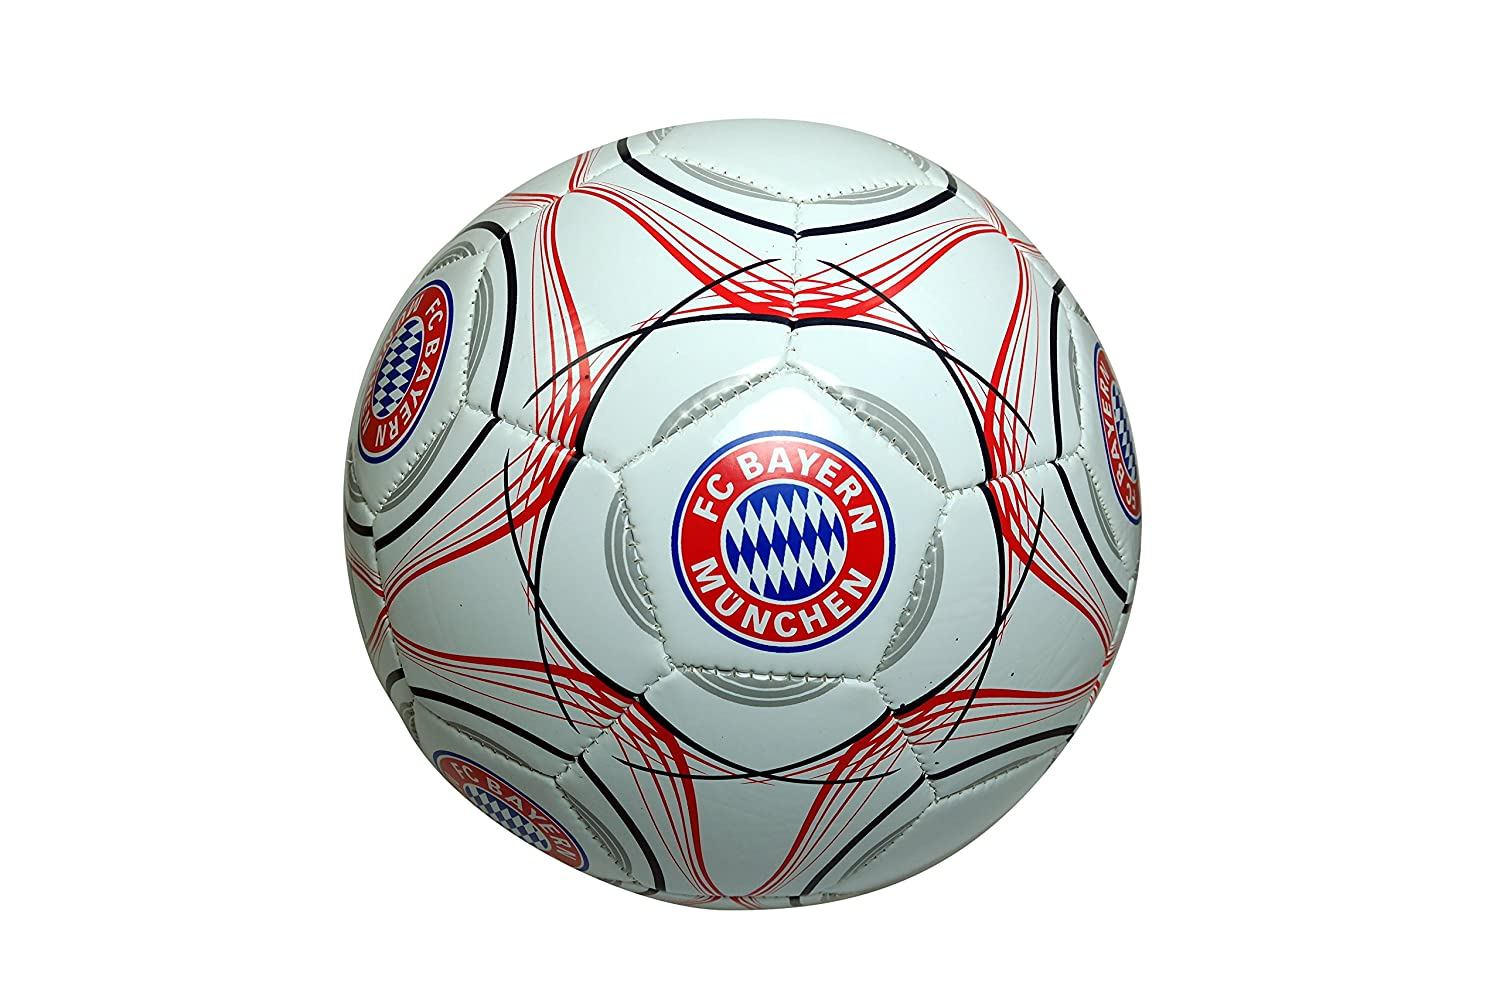 FC Bayern Authentic Official Licensedサッカーボールサイズ5 -014   B06XX8KBL7